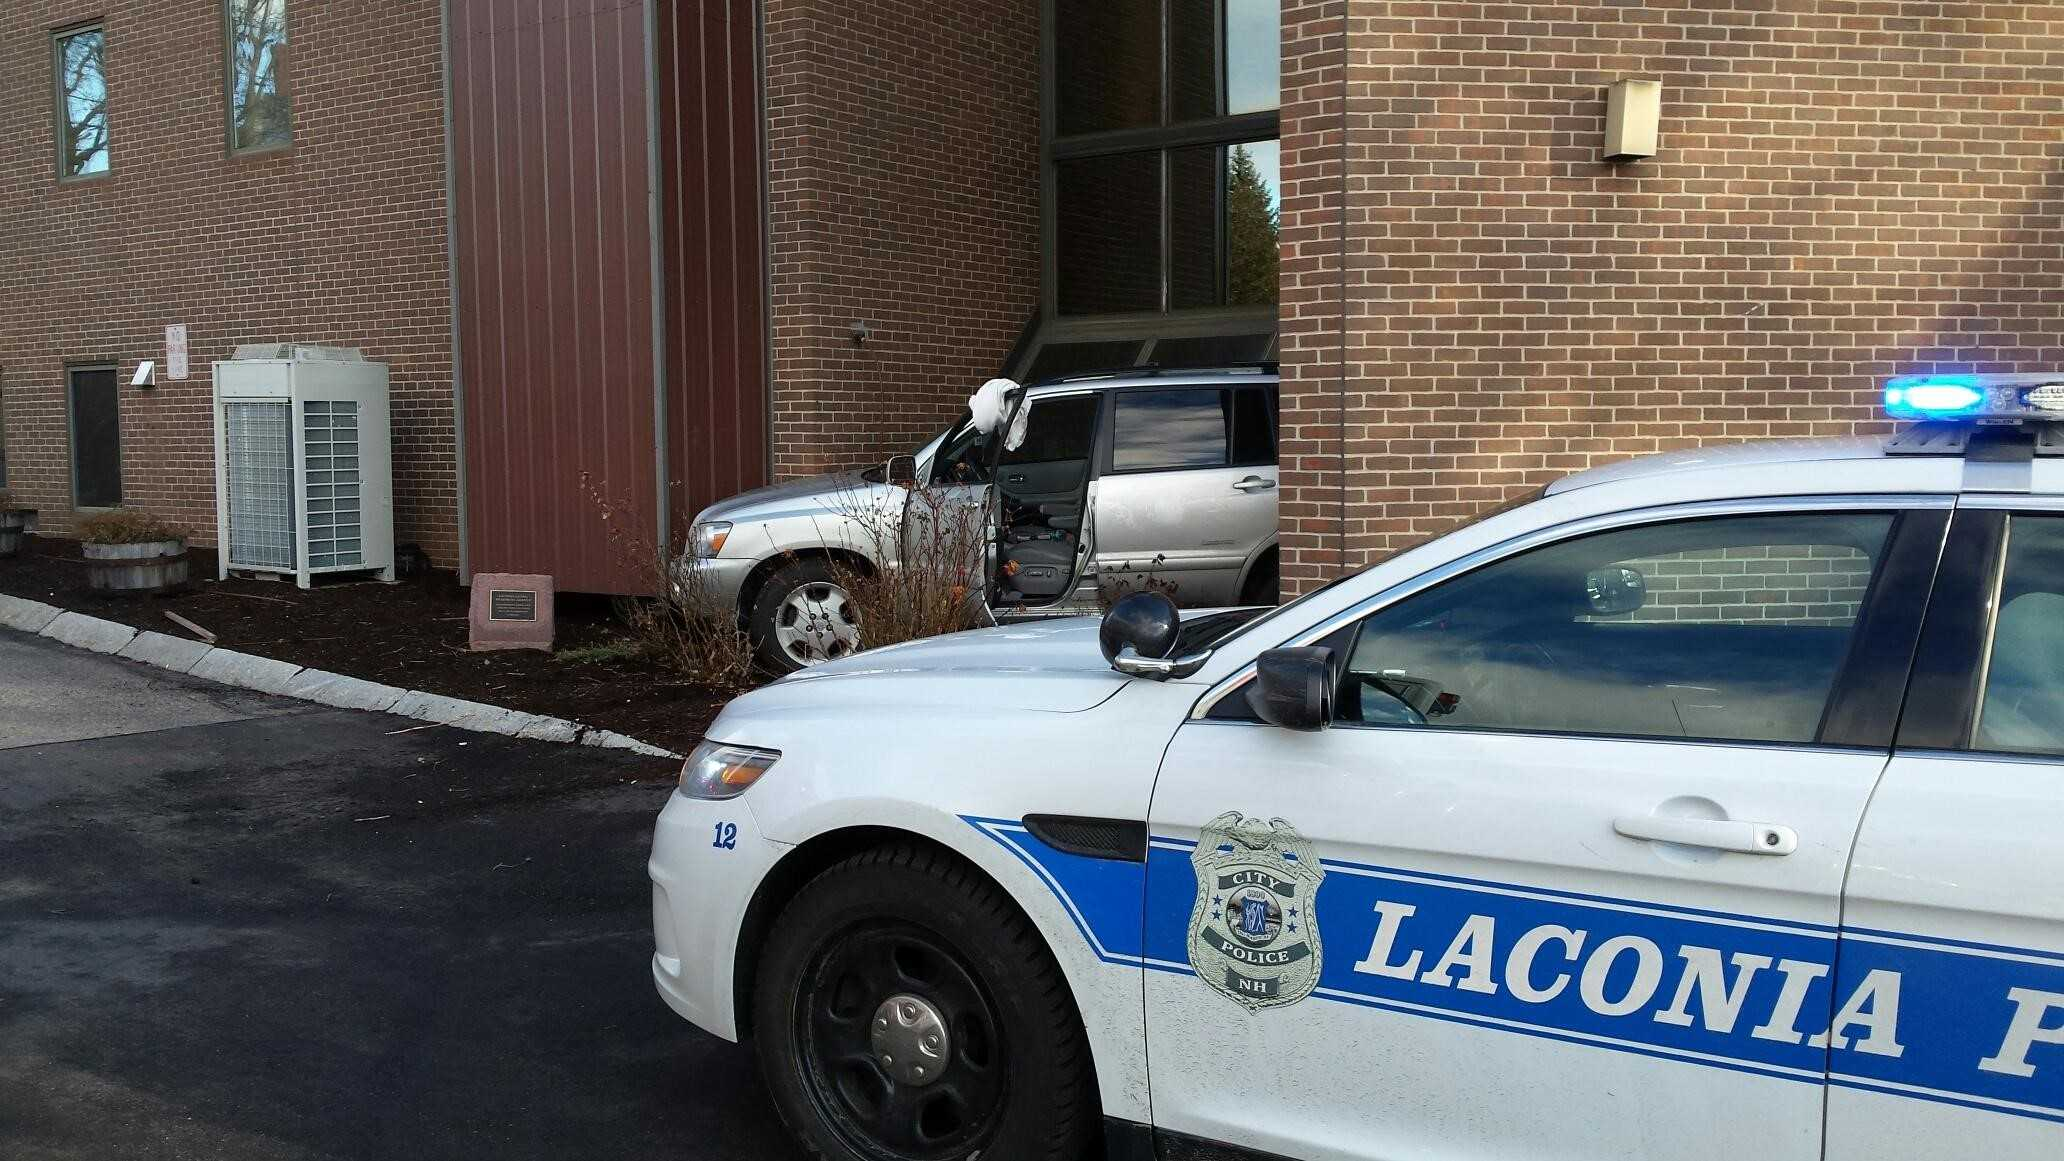 Car crashes into Laconia building